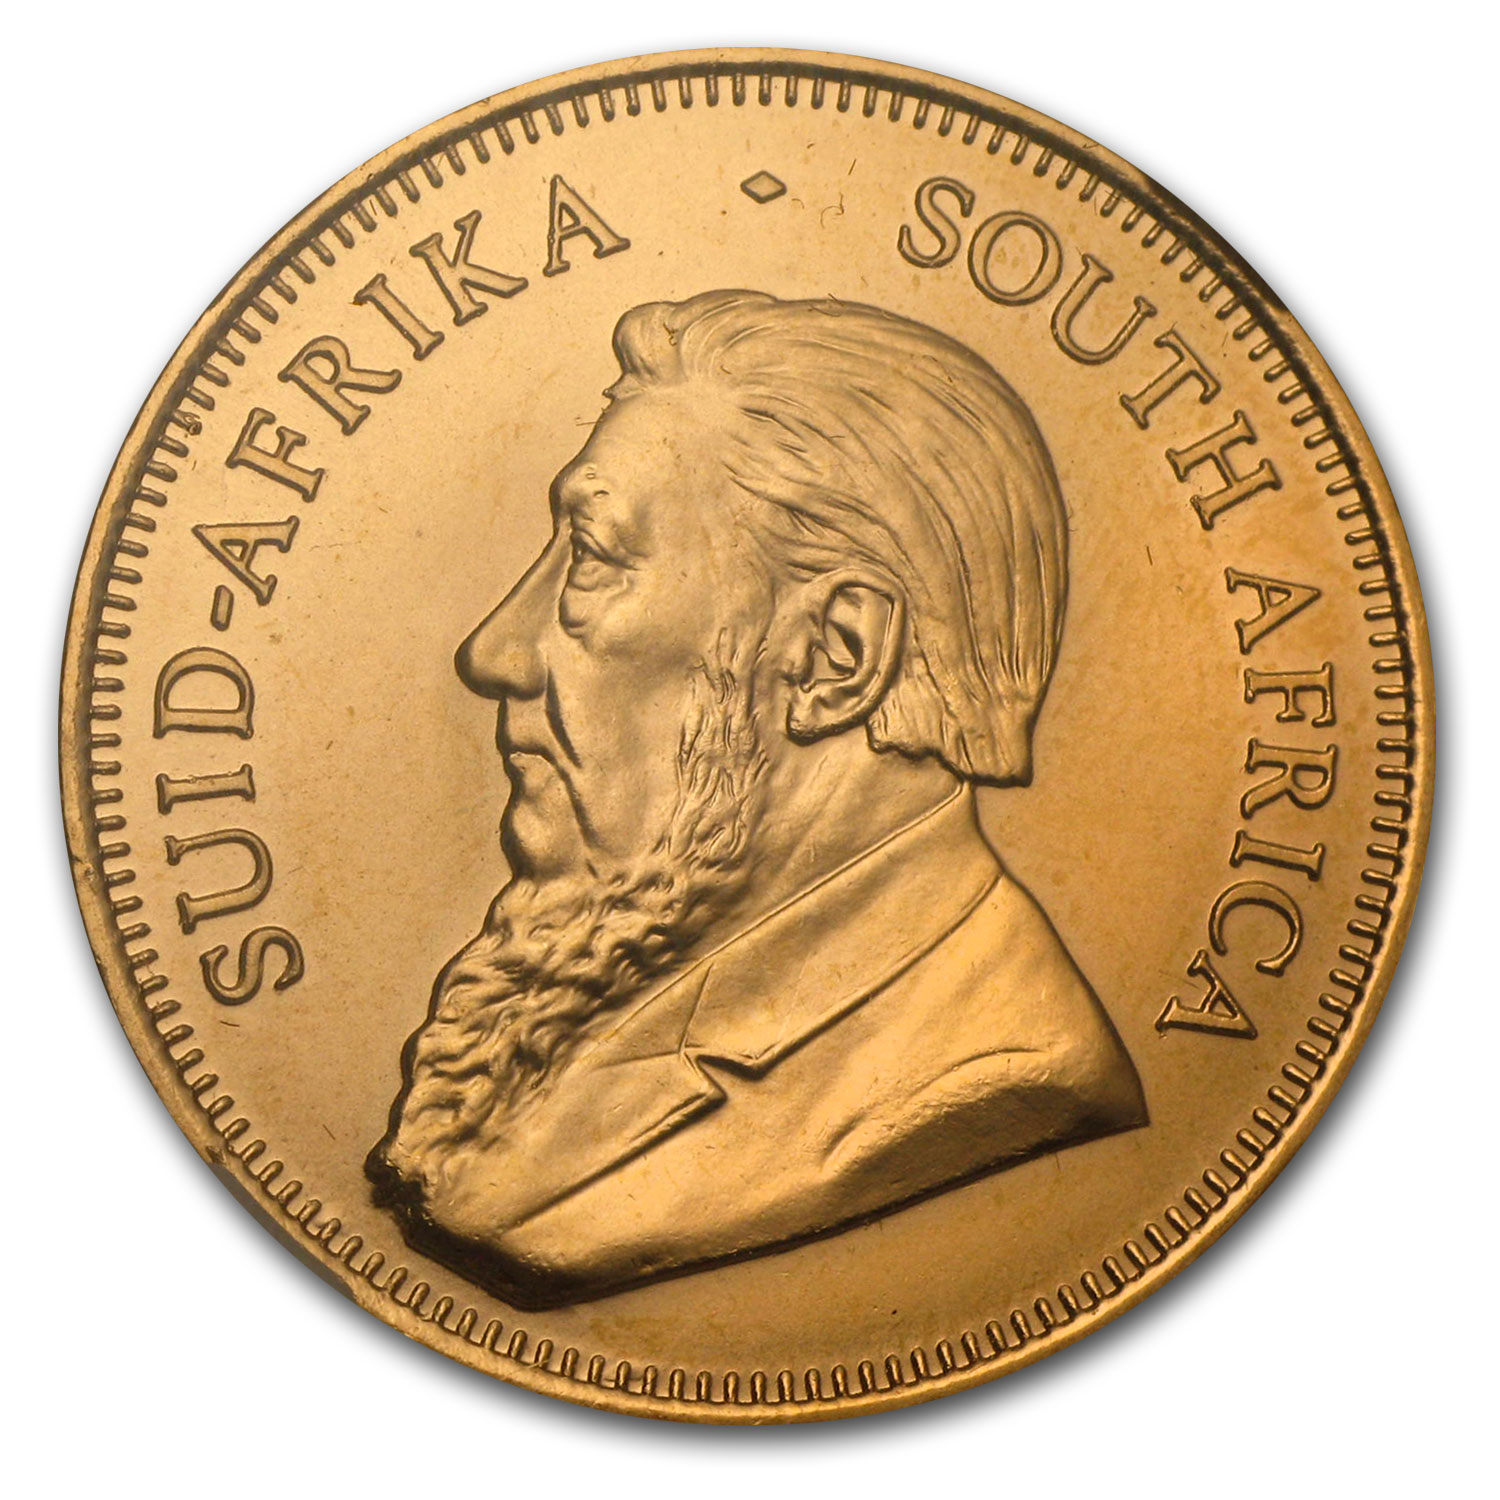 2010 South Africa 1 oz Gold Krugerrand MS-69 NGC